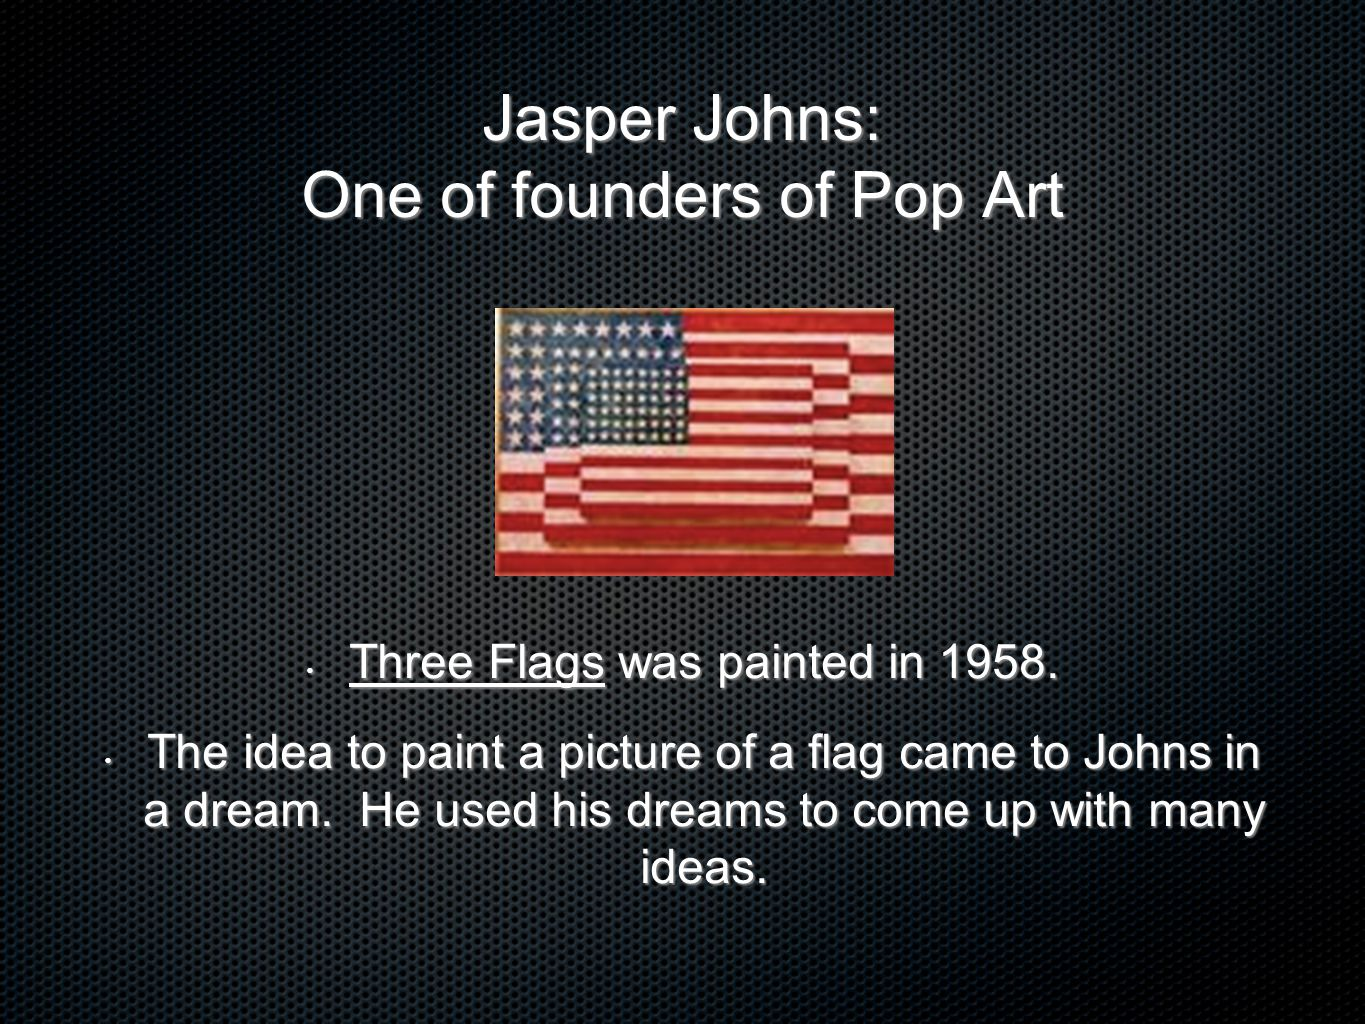 In Three Flags, Jasper Johns used a technique called: ENCAUSTIC In Three Flags, Jasper Johns used a technique called: ENCAUSTIC This is done by mixing melted wax and paint and applying it to a surface while it is hot.